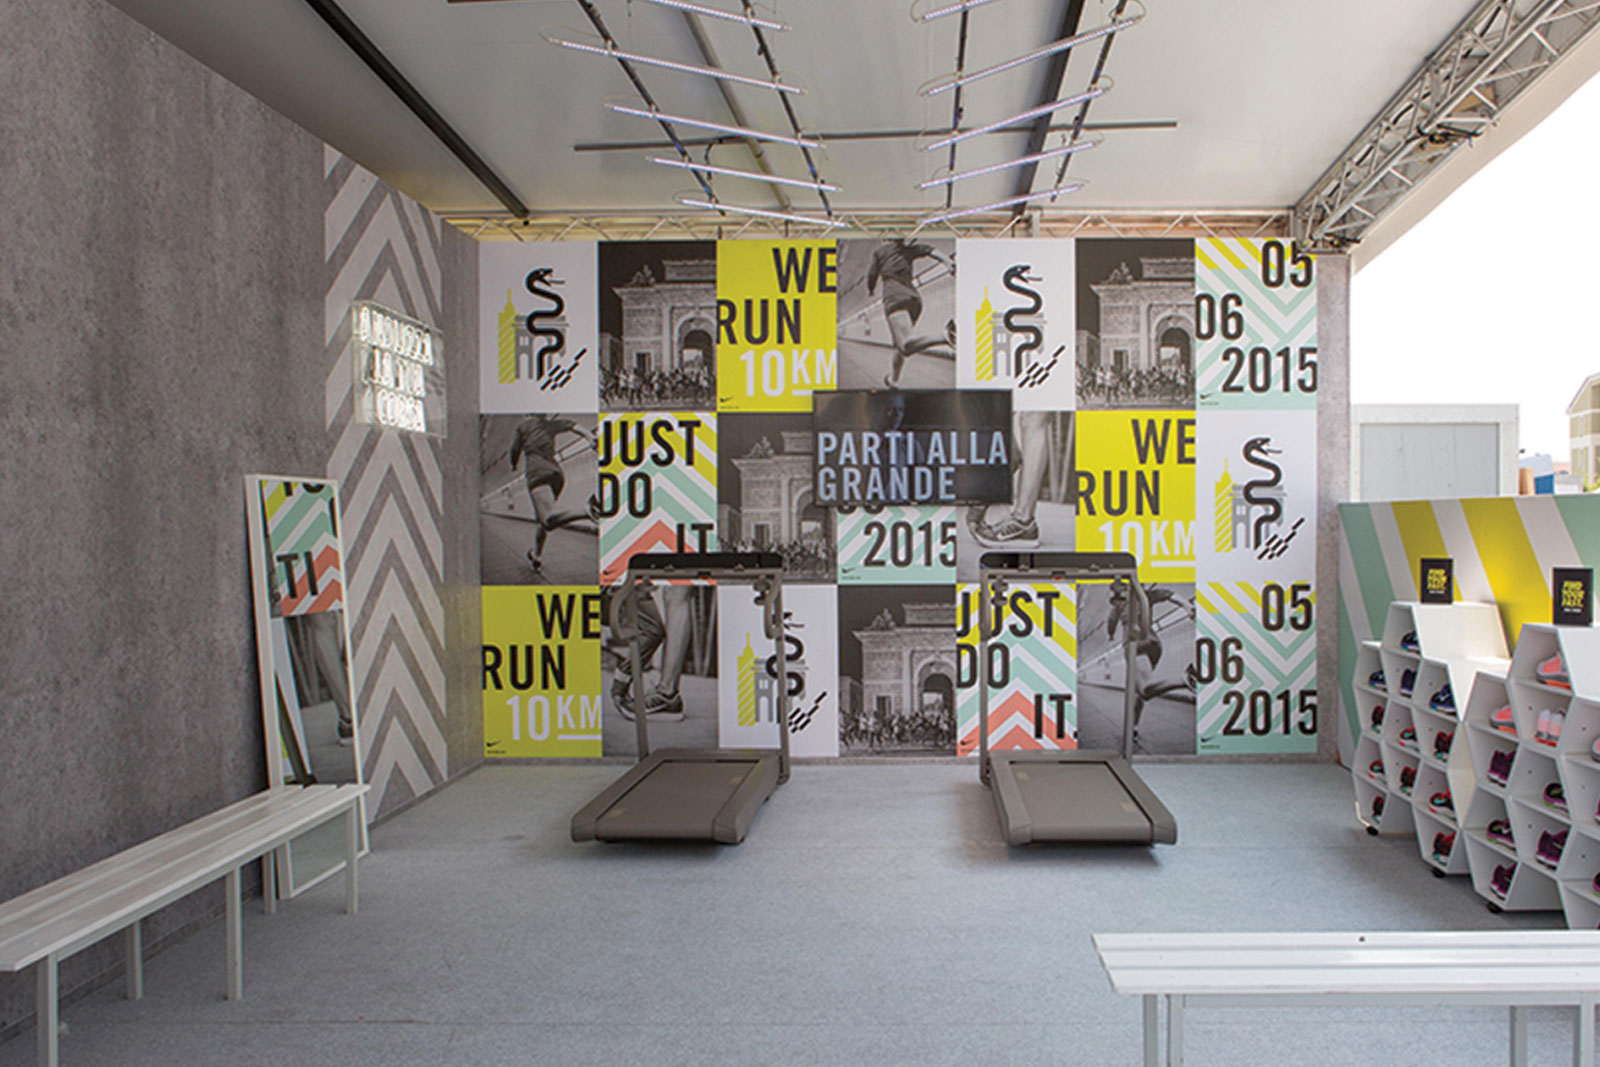 low priced f51f8 99d24 Design and Creative Direction for the annual running event dedicated to  women. The activity revolved around a custom-designed temporary pop-up store  in ...